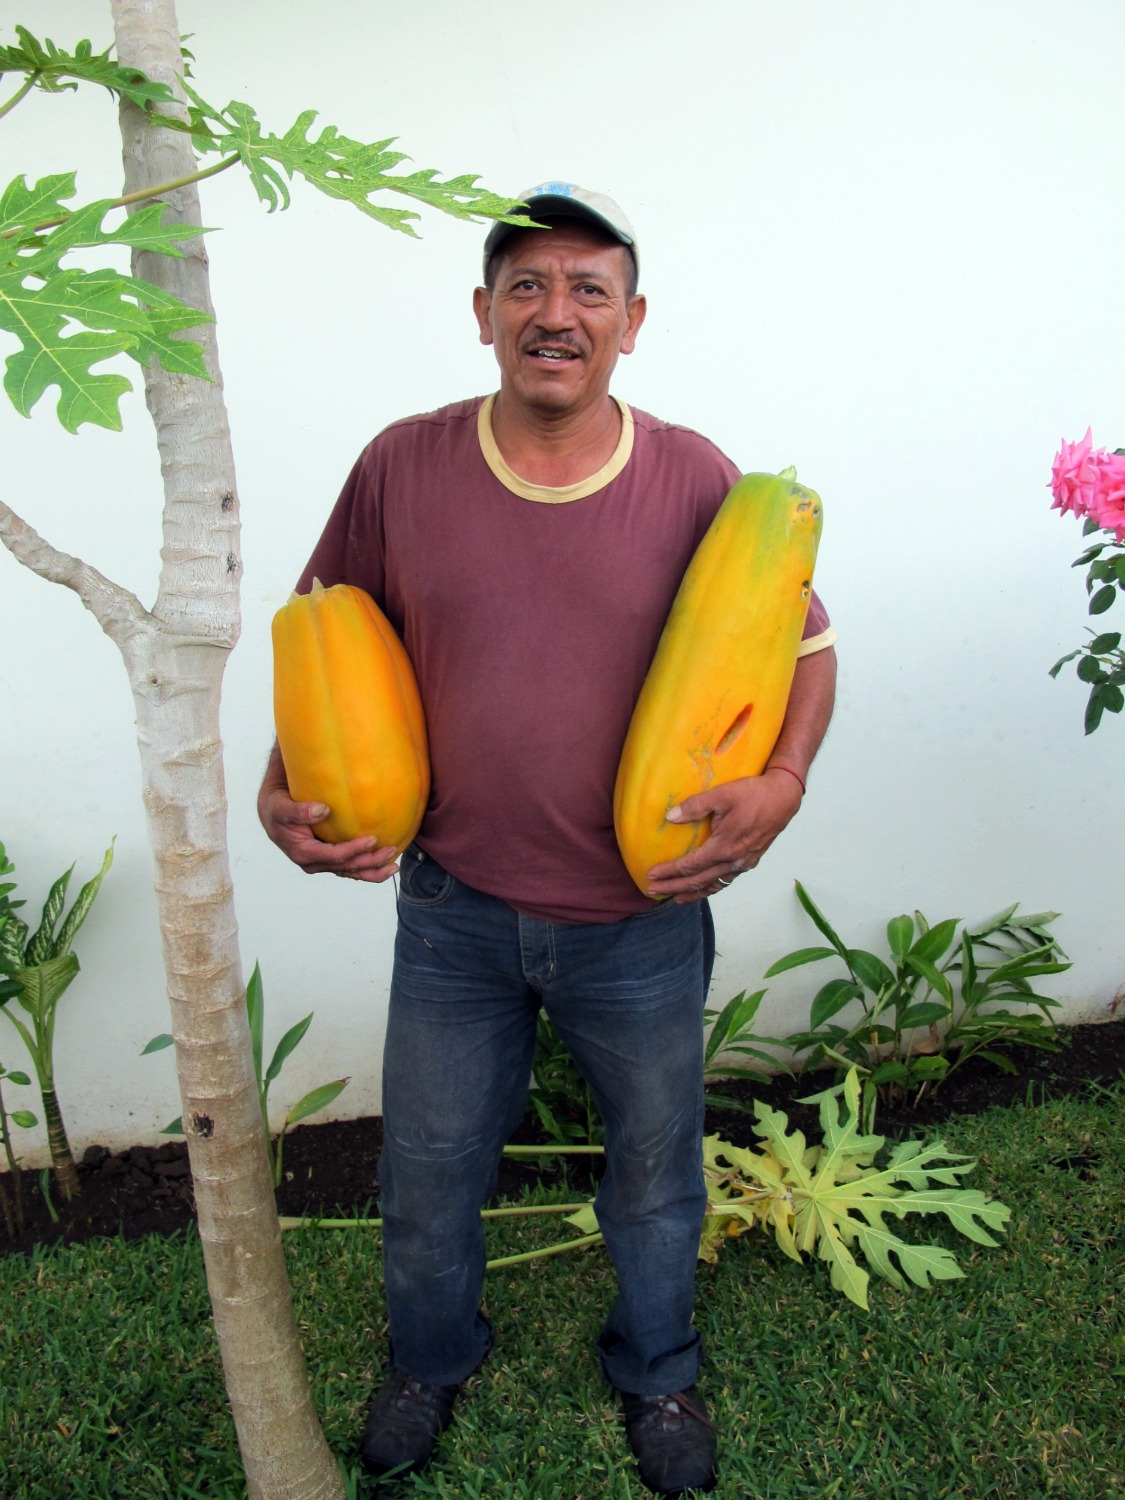 http://stmemory.files.wordpress.com/2010/12/don-diego-and-two-papaya.jpg